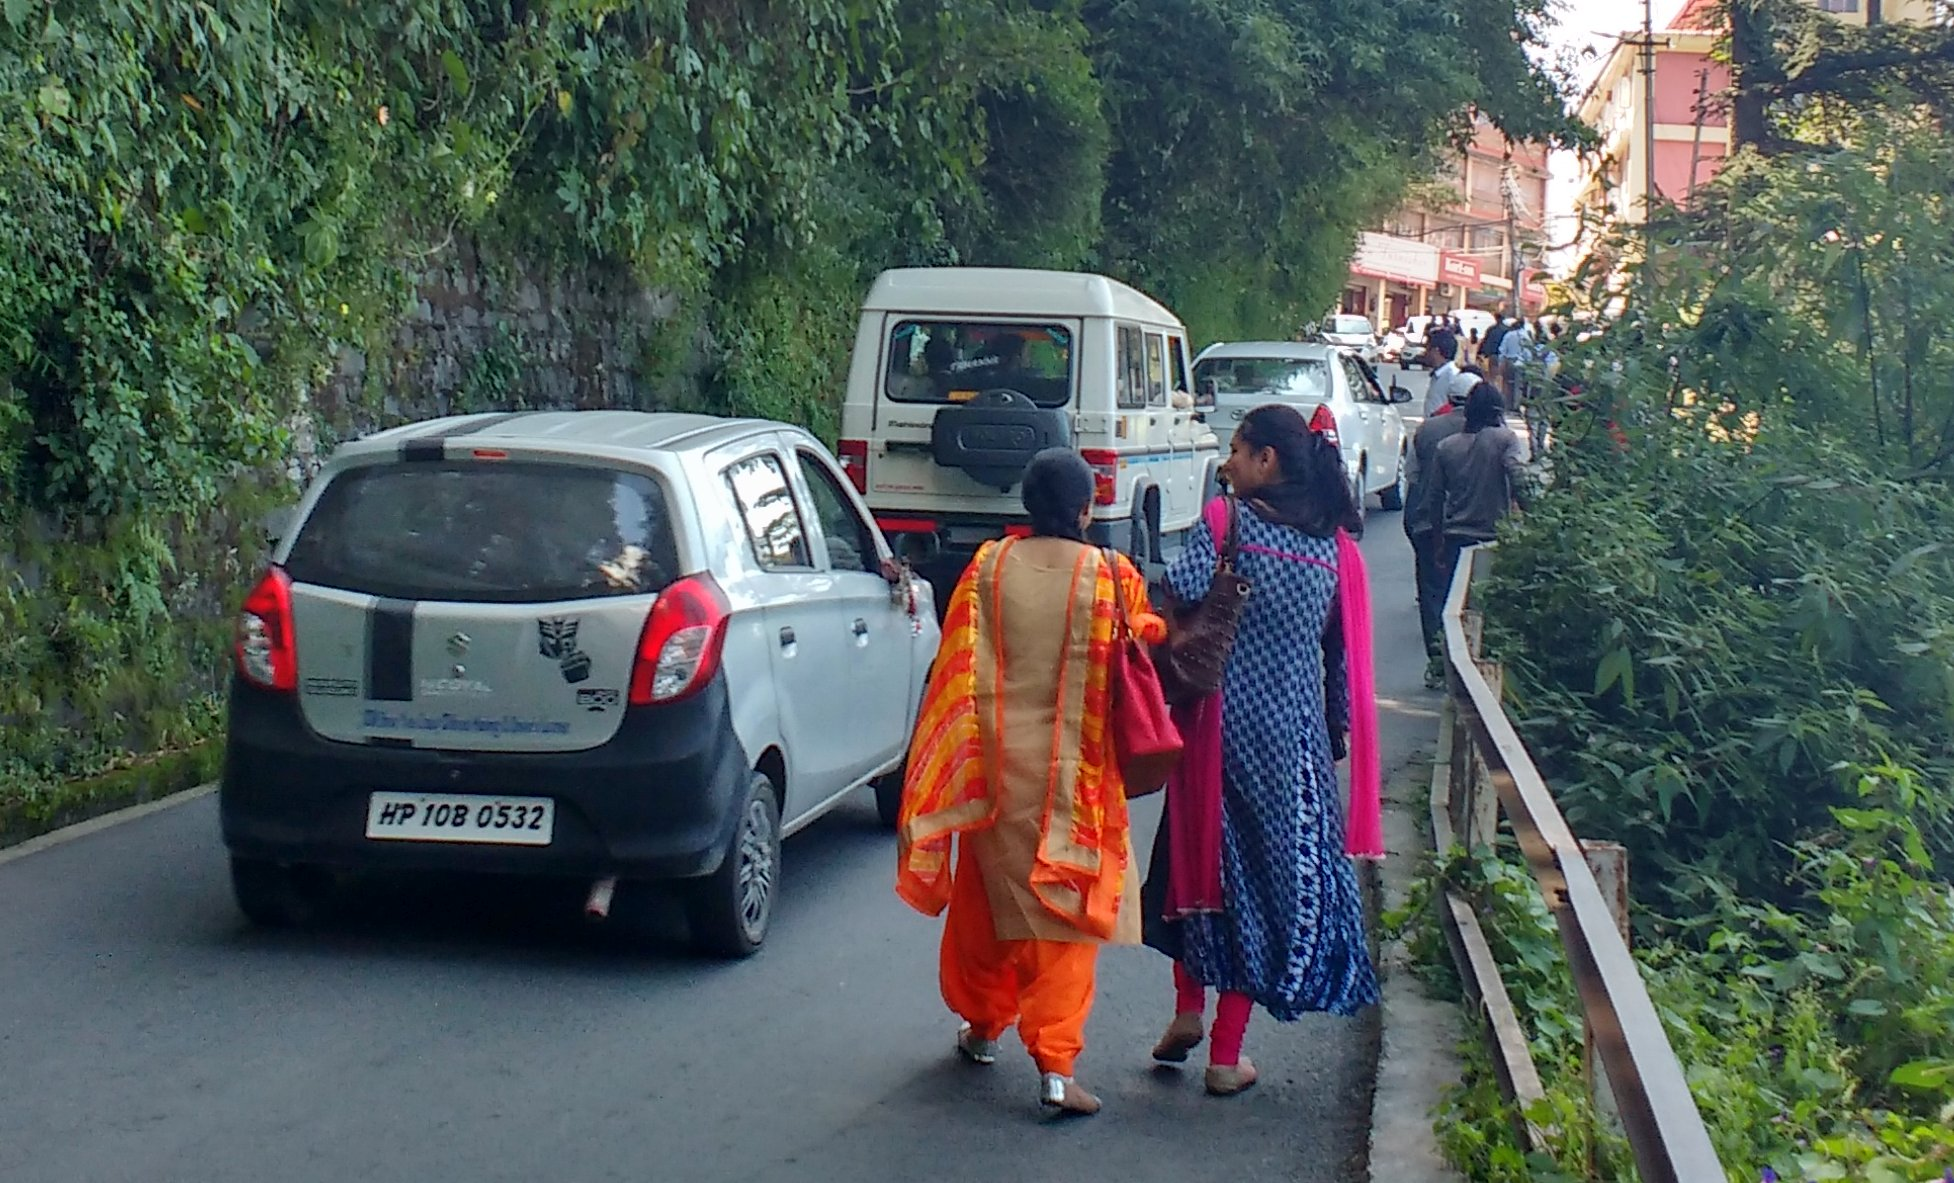 Demand for footpaths in shimla city